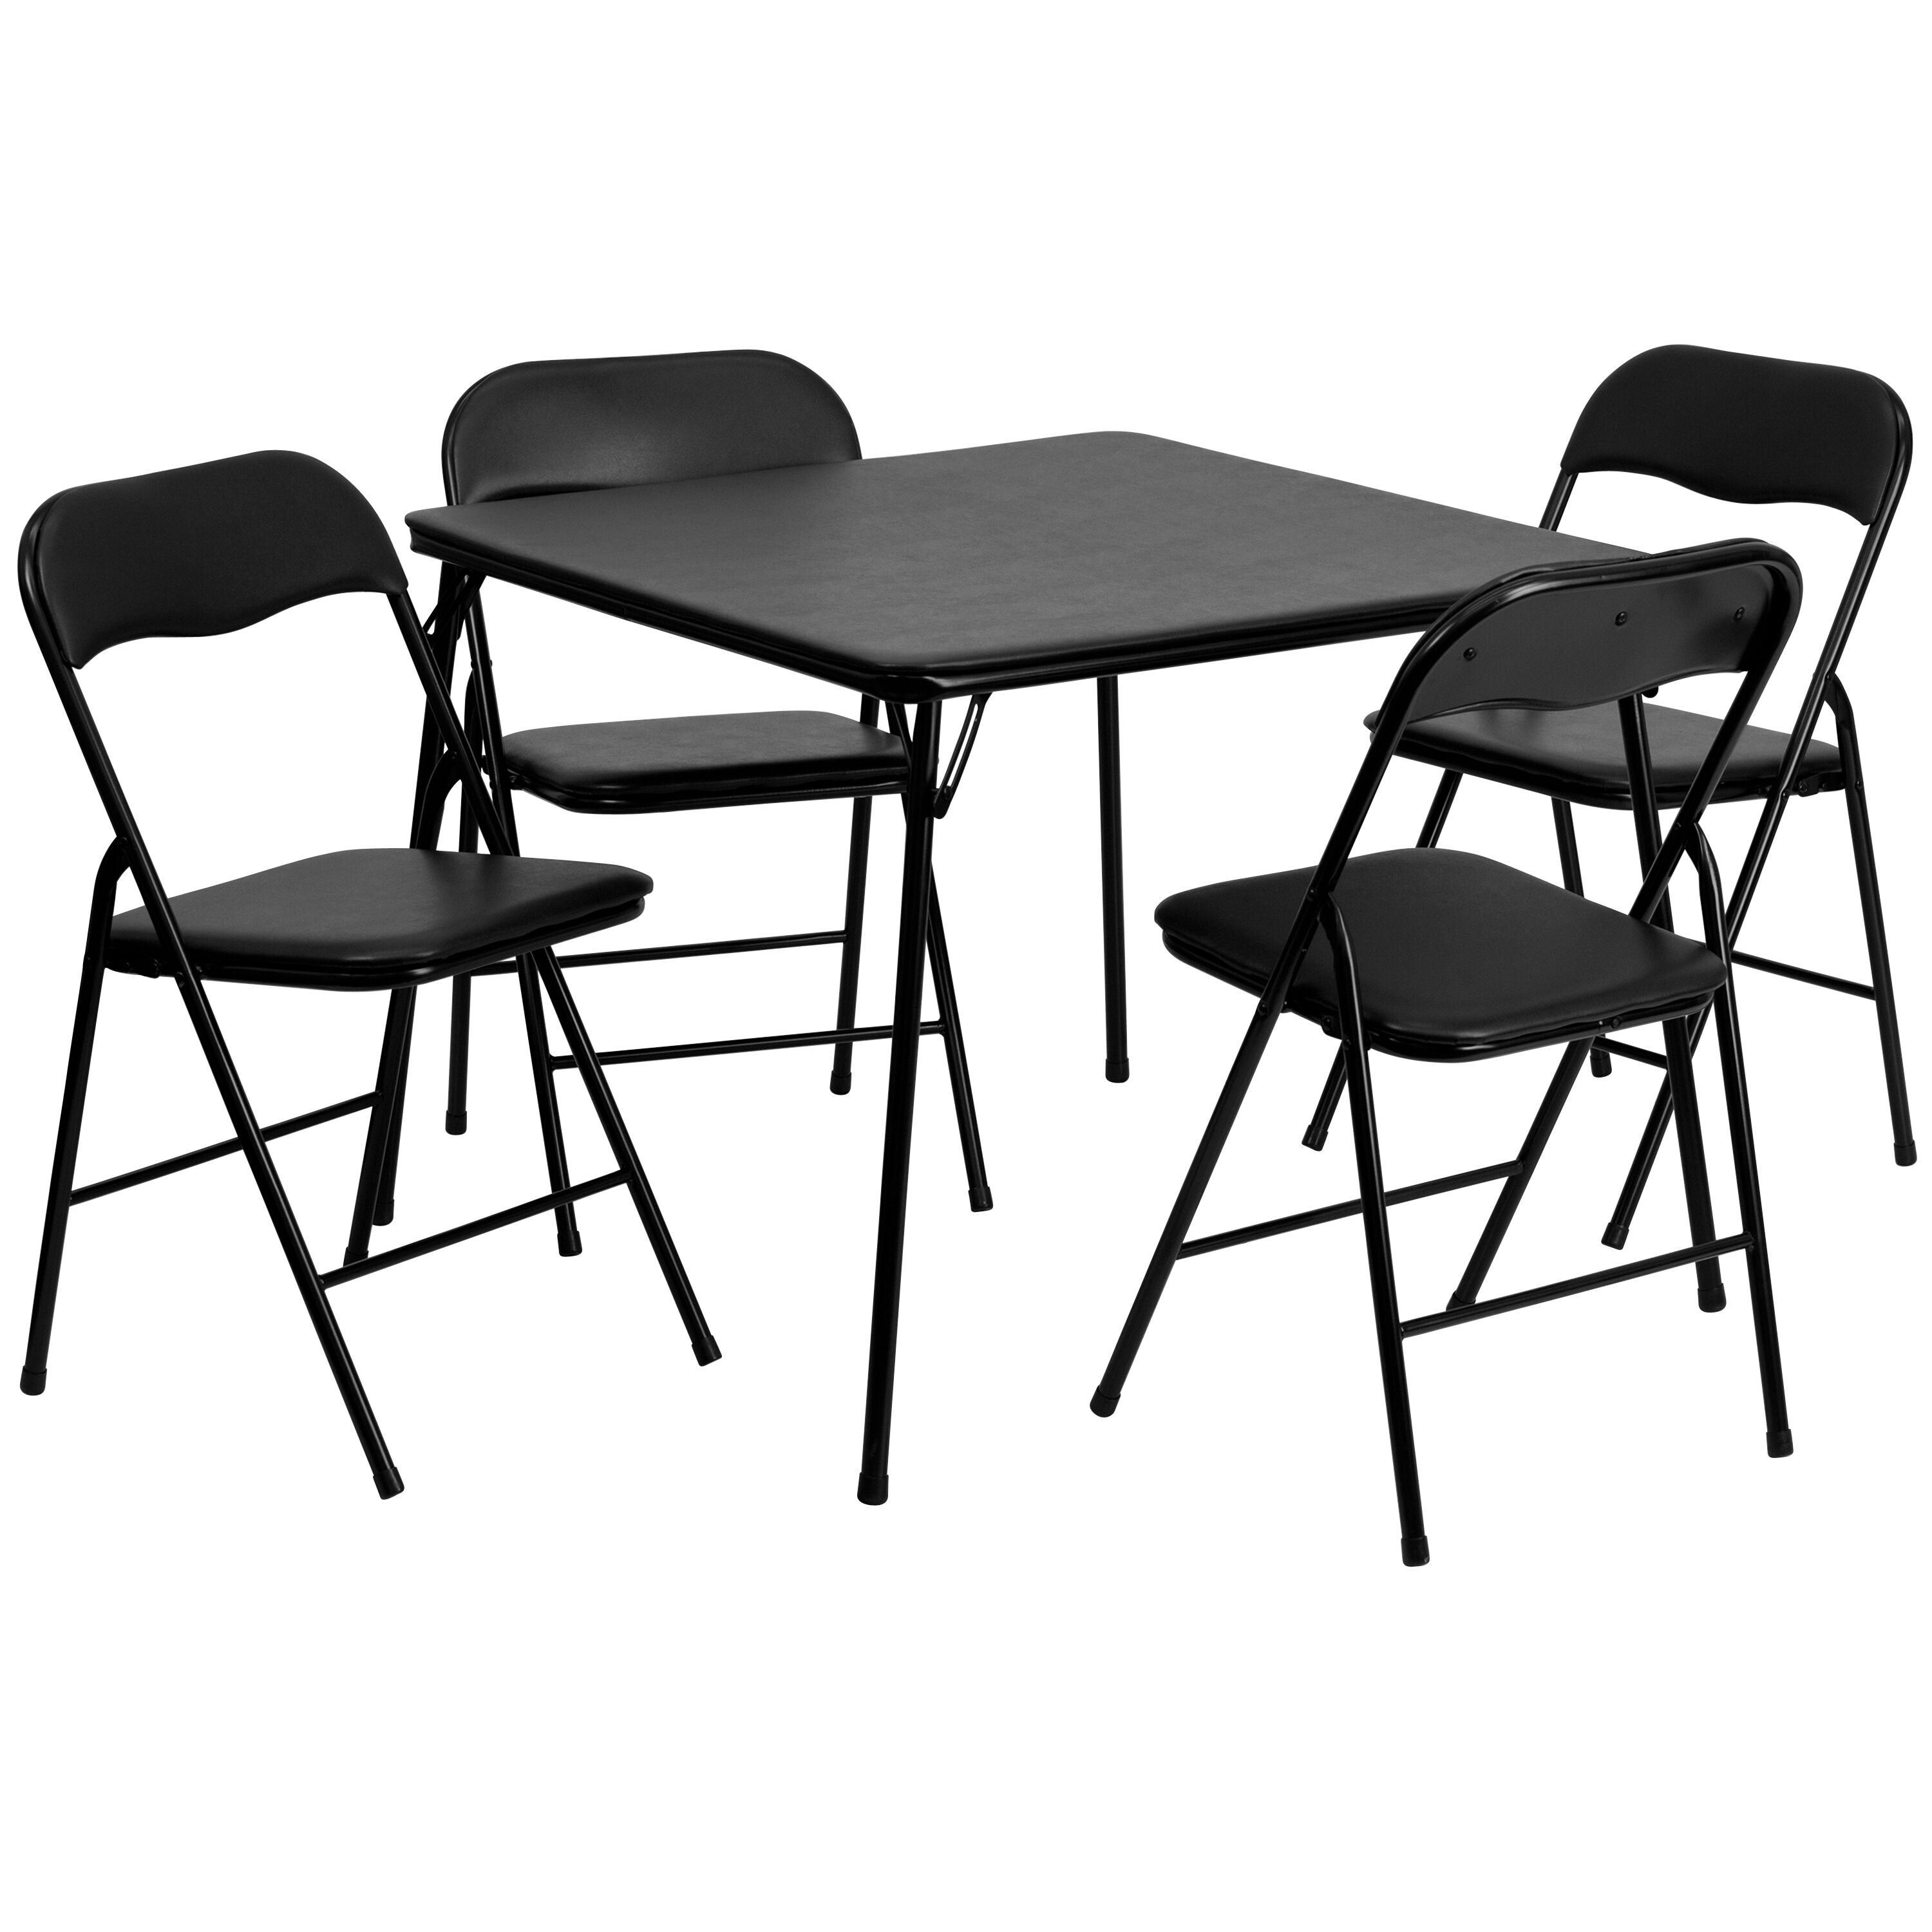 Superieur Folding Chairs 4 Less